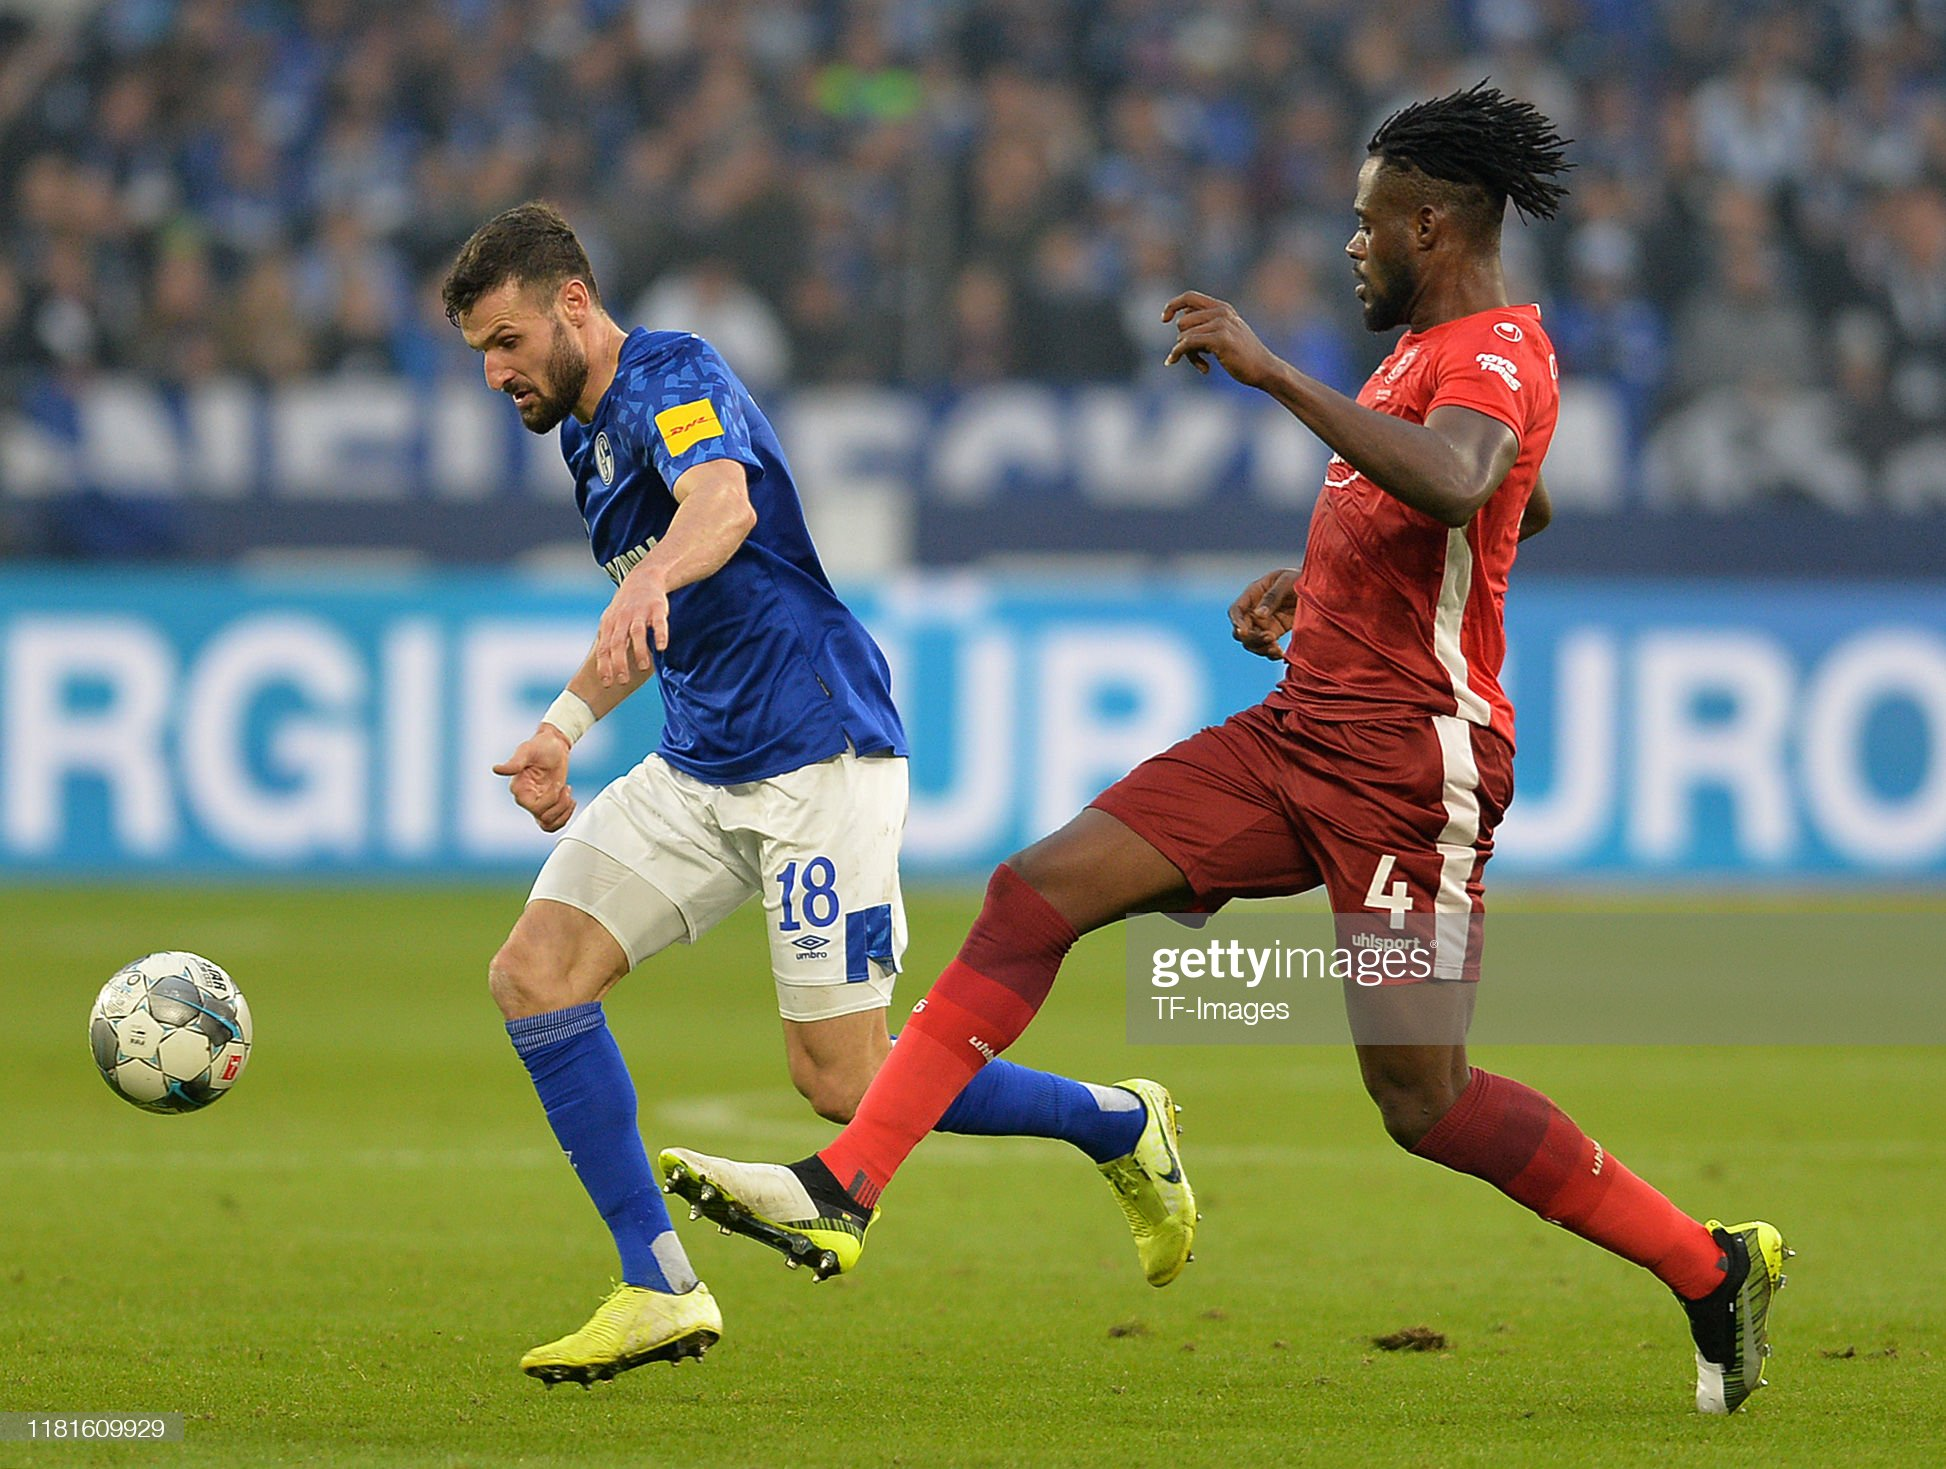 Fortuna Dusseldorf v Schalke Preview, prediction and odds